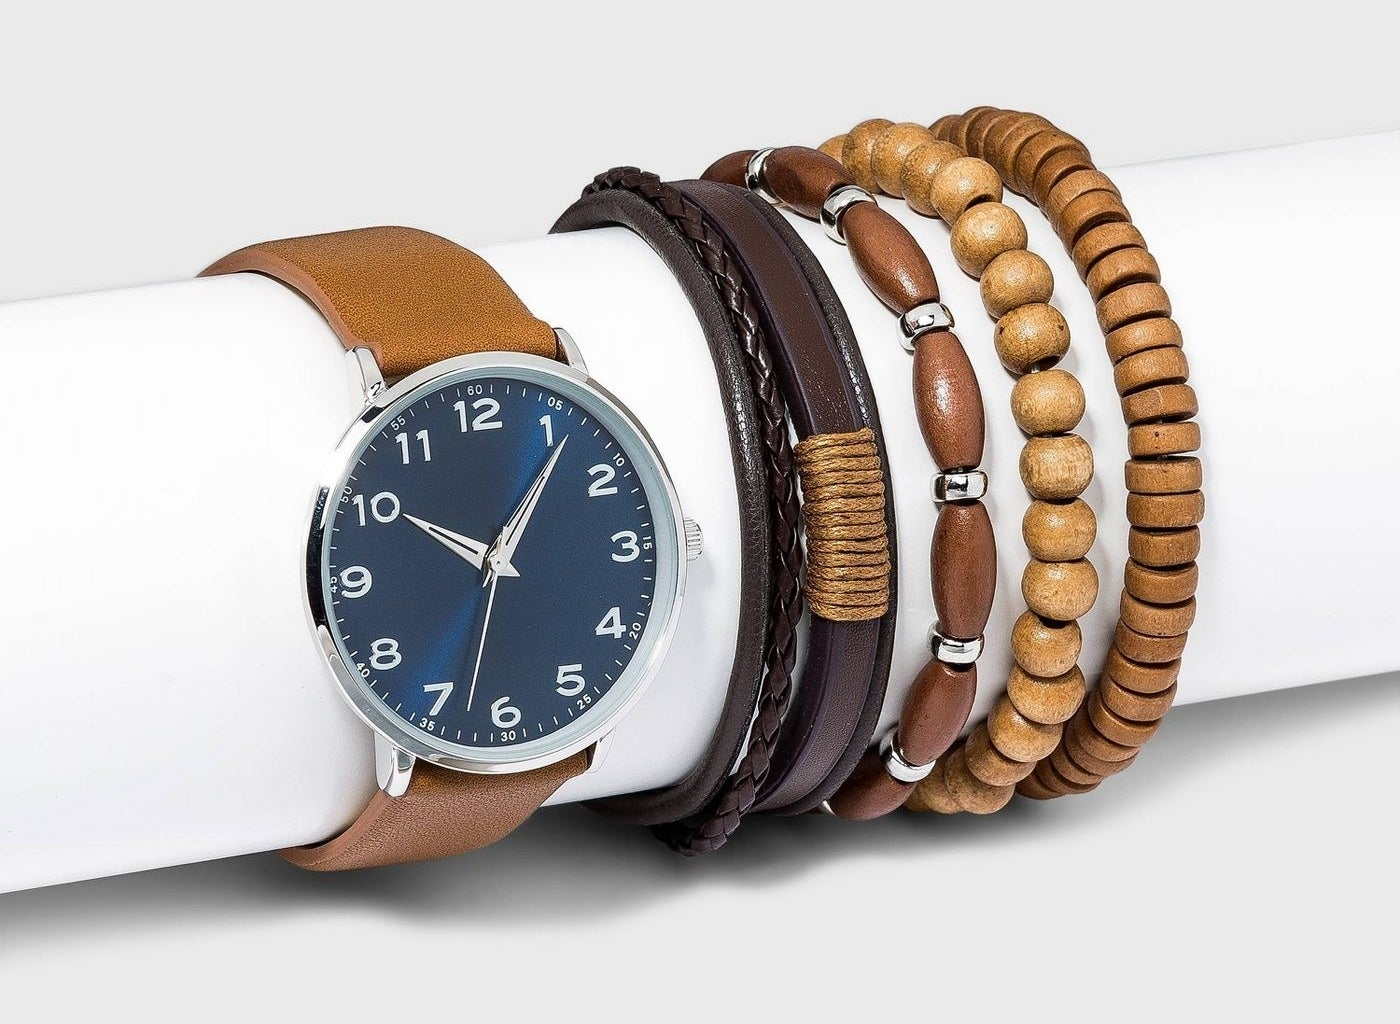 Navy watch with brown watchband and bracelets